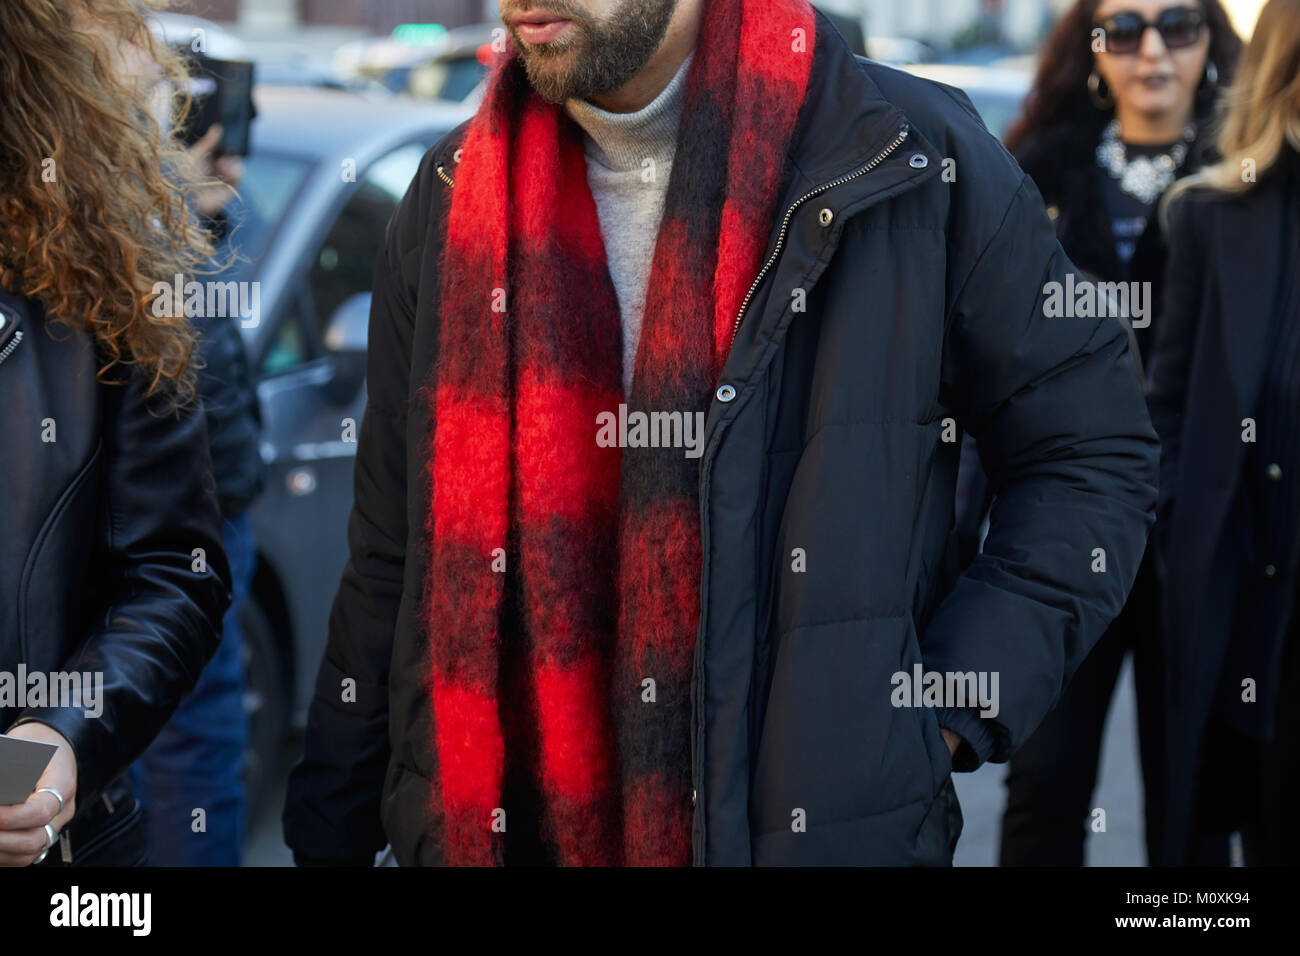 33093f1ebce MILAN - JANUARY 13  Man with red and black scarf before Diesel Black Gold fashion  show, Milan Fashion Week street style on January 13, 2018 in Milan.